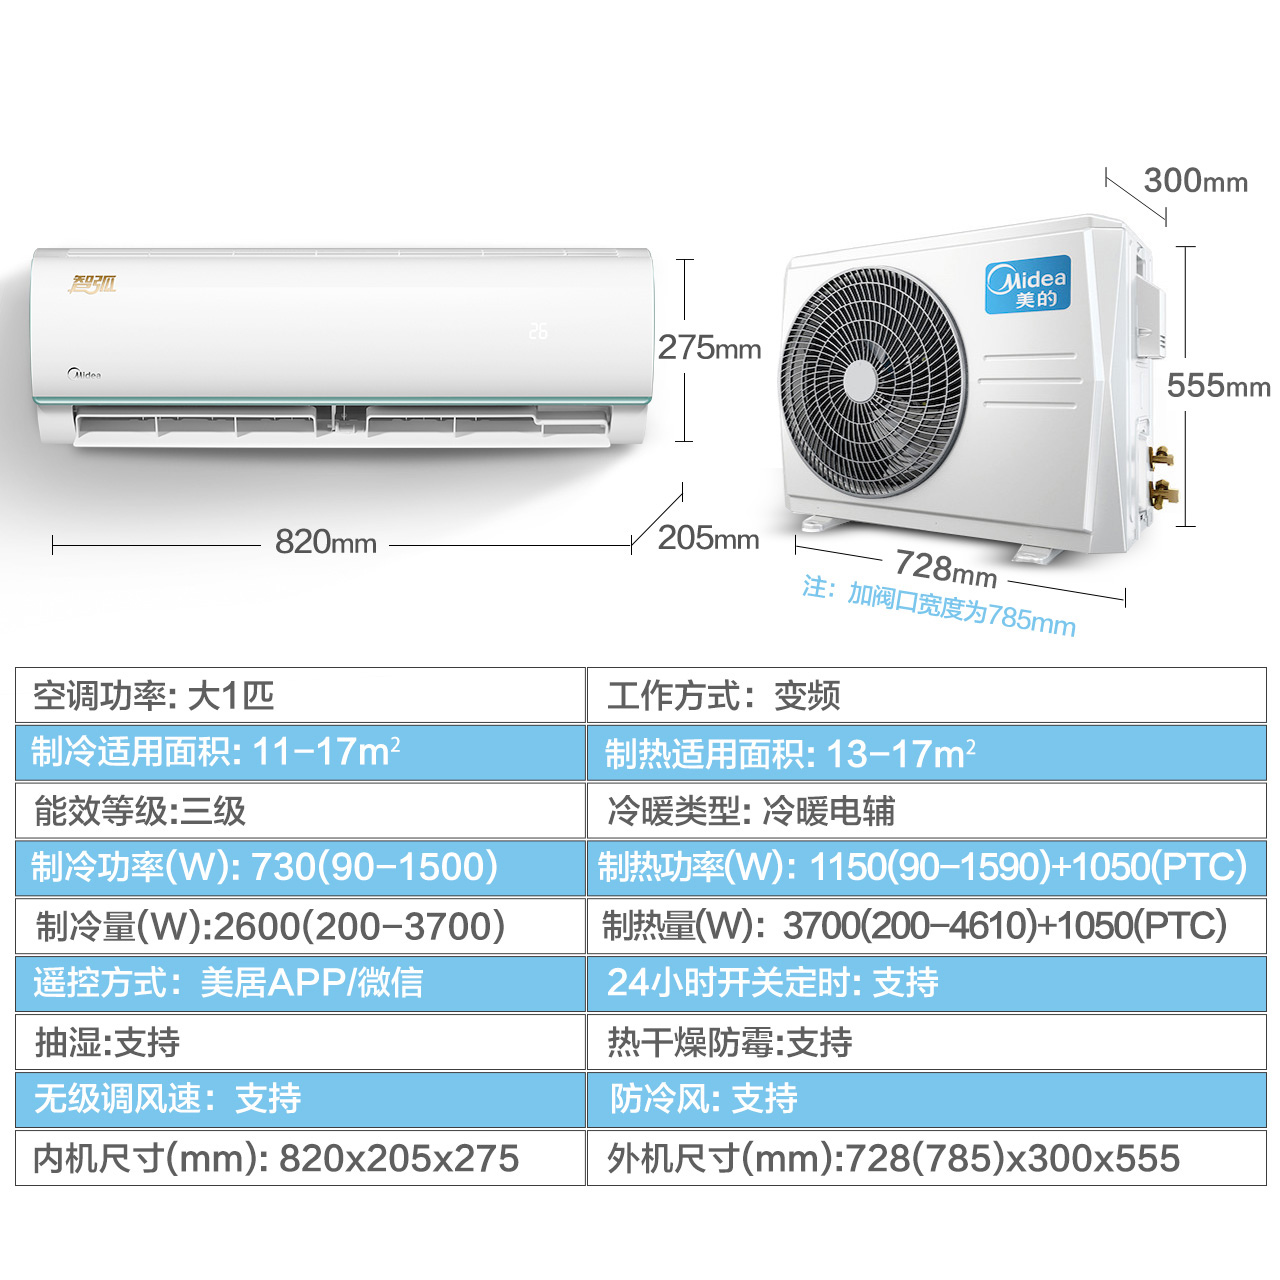 Midea Beauty Kfr 26gw Wdcn8a3 Big 1 Inverter Home Heating And Cooling Wall Mounted Air Conditioner Hang Up Electronical Circuit Board Buy